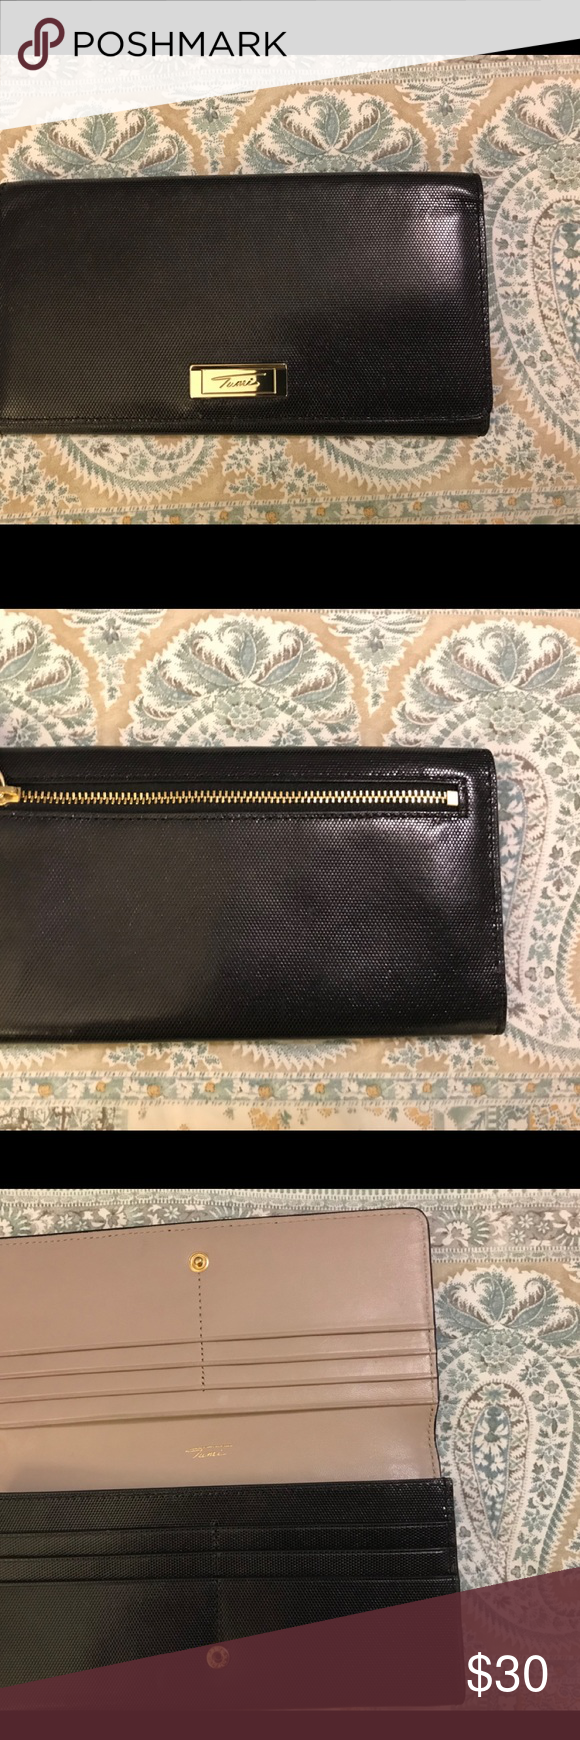 Tumi Black Wallet Black wallet, gently used unnoticeable small  imperfections, very clean inside and out Tumi Bags Wallets